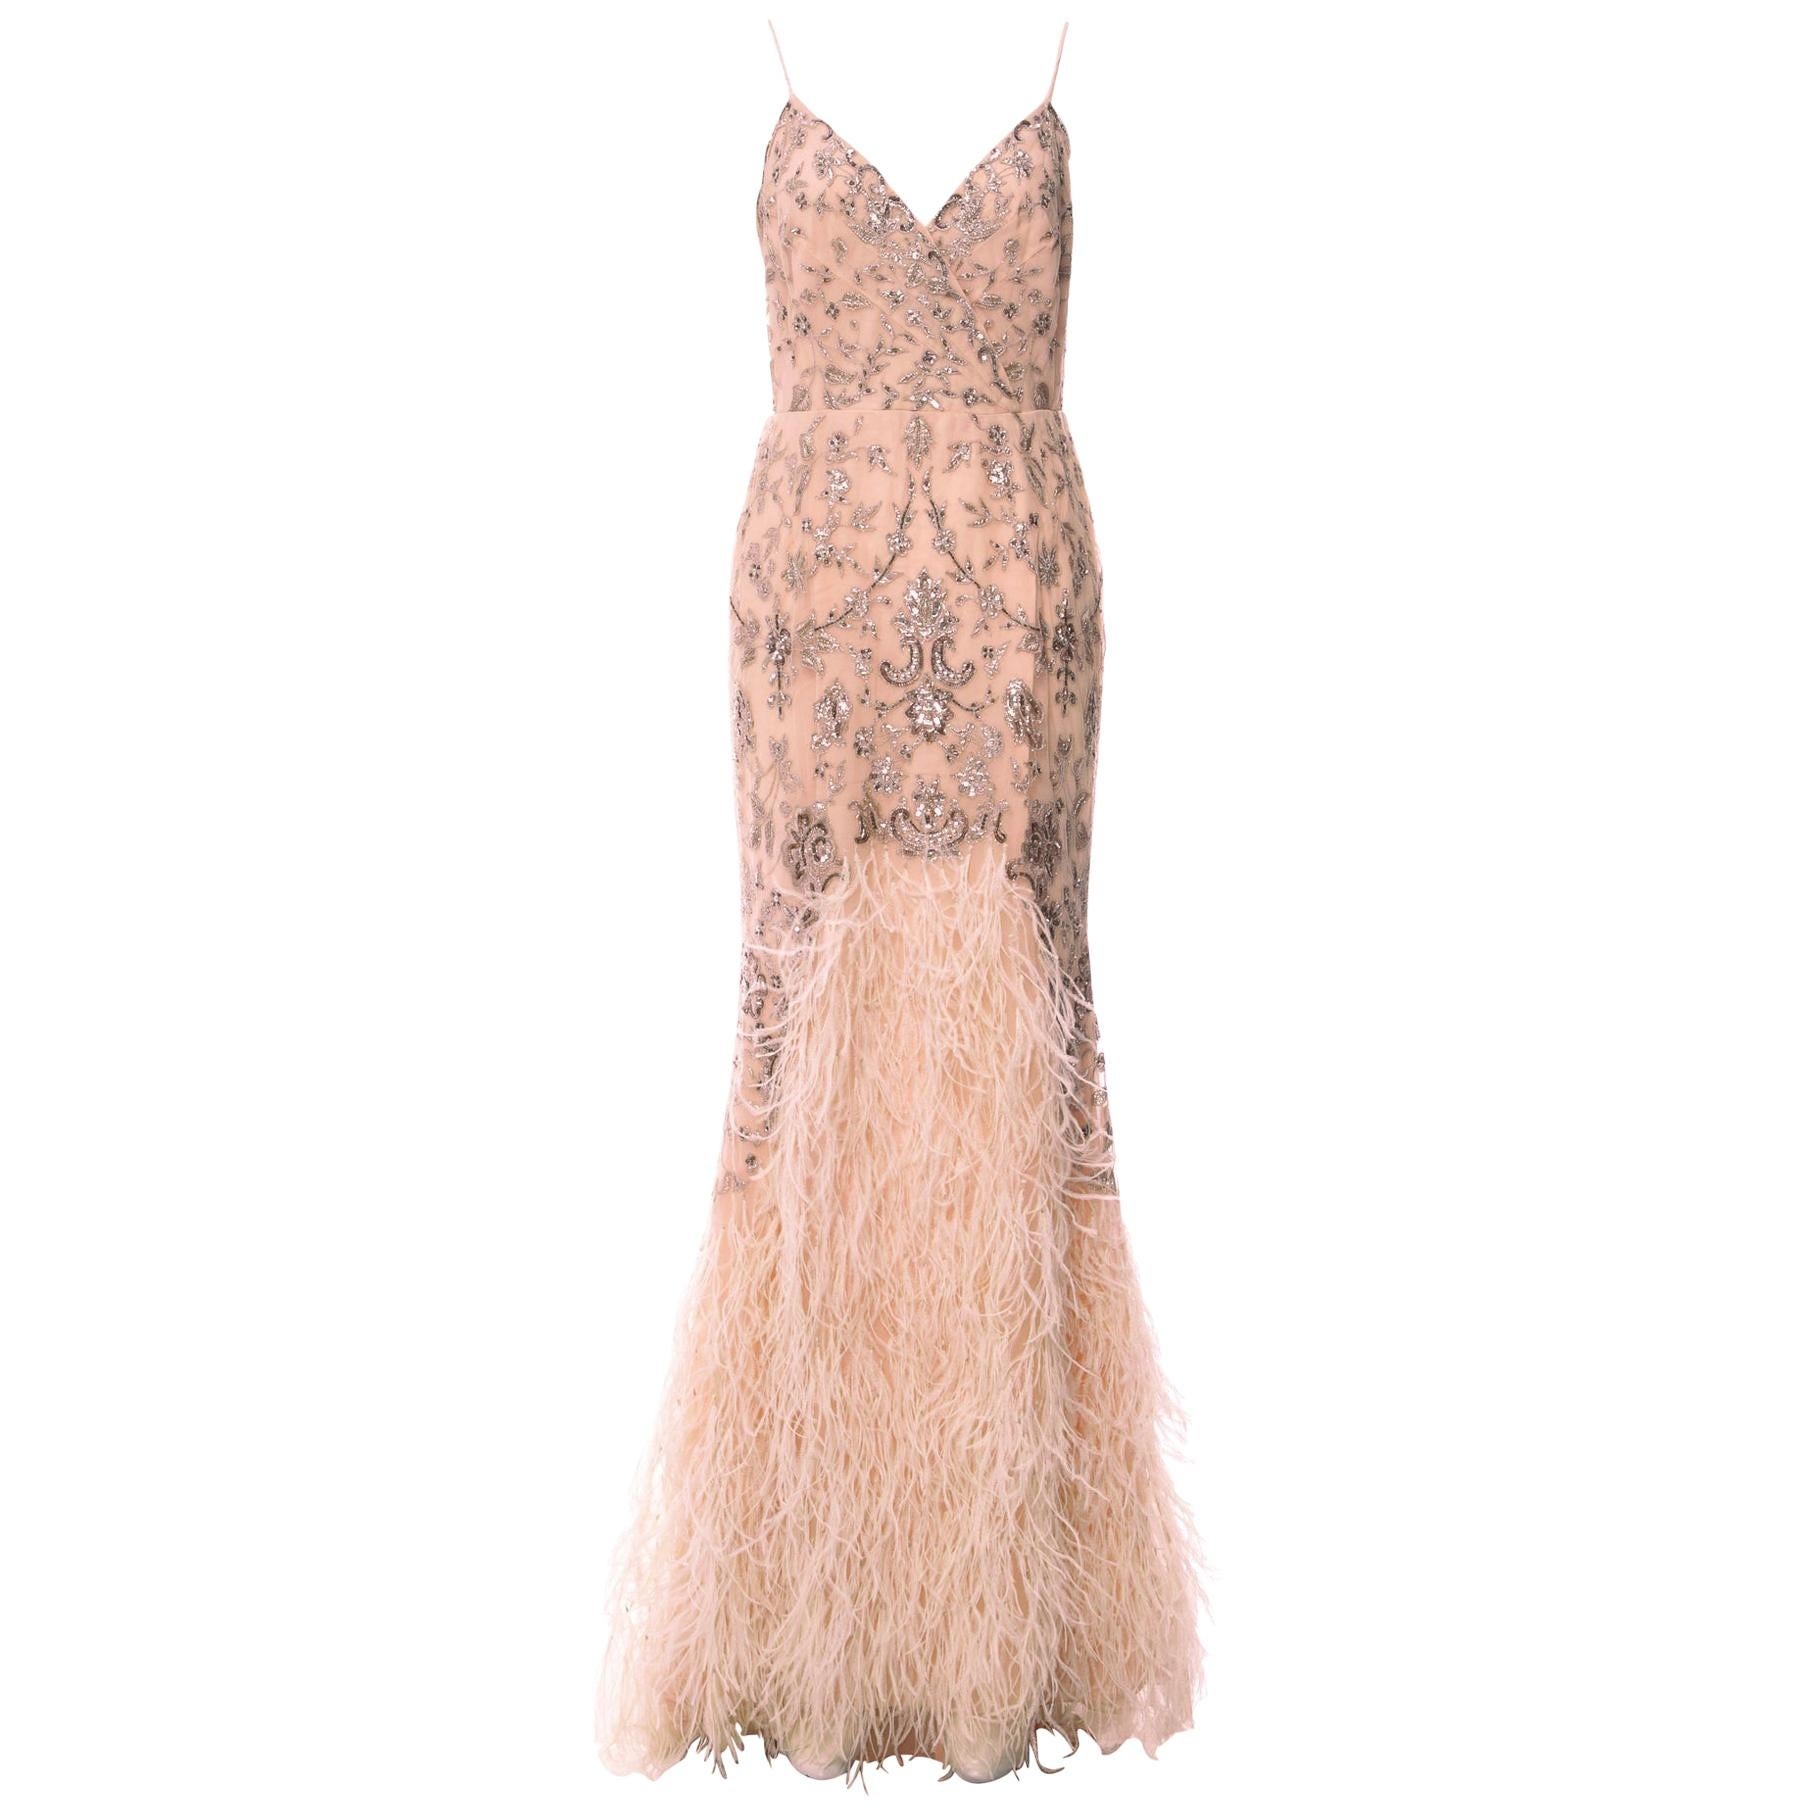 S/S 2012 Look #47 OSCAR DE LA RENTA EMBELLISHED NUDE GOWN with FEATHERS